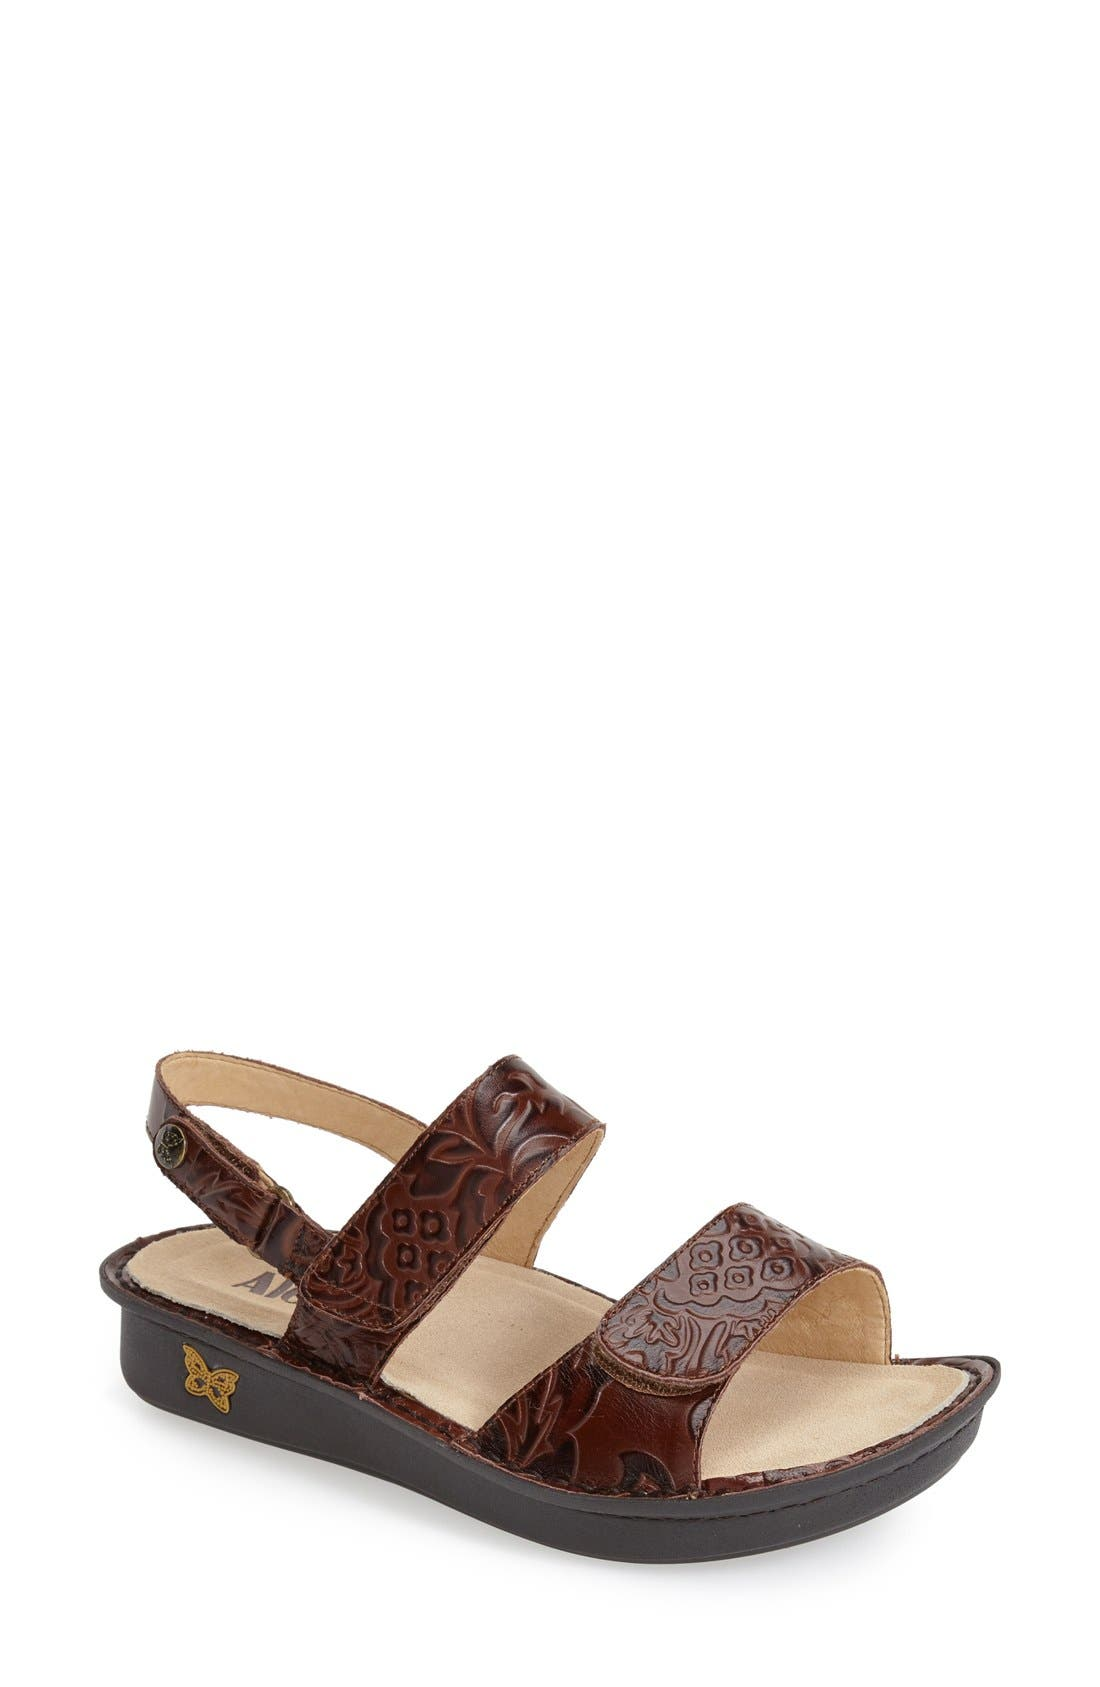 Alternate Image 1 Selected - Alegria 'Verona' Sandal (Women)